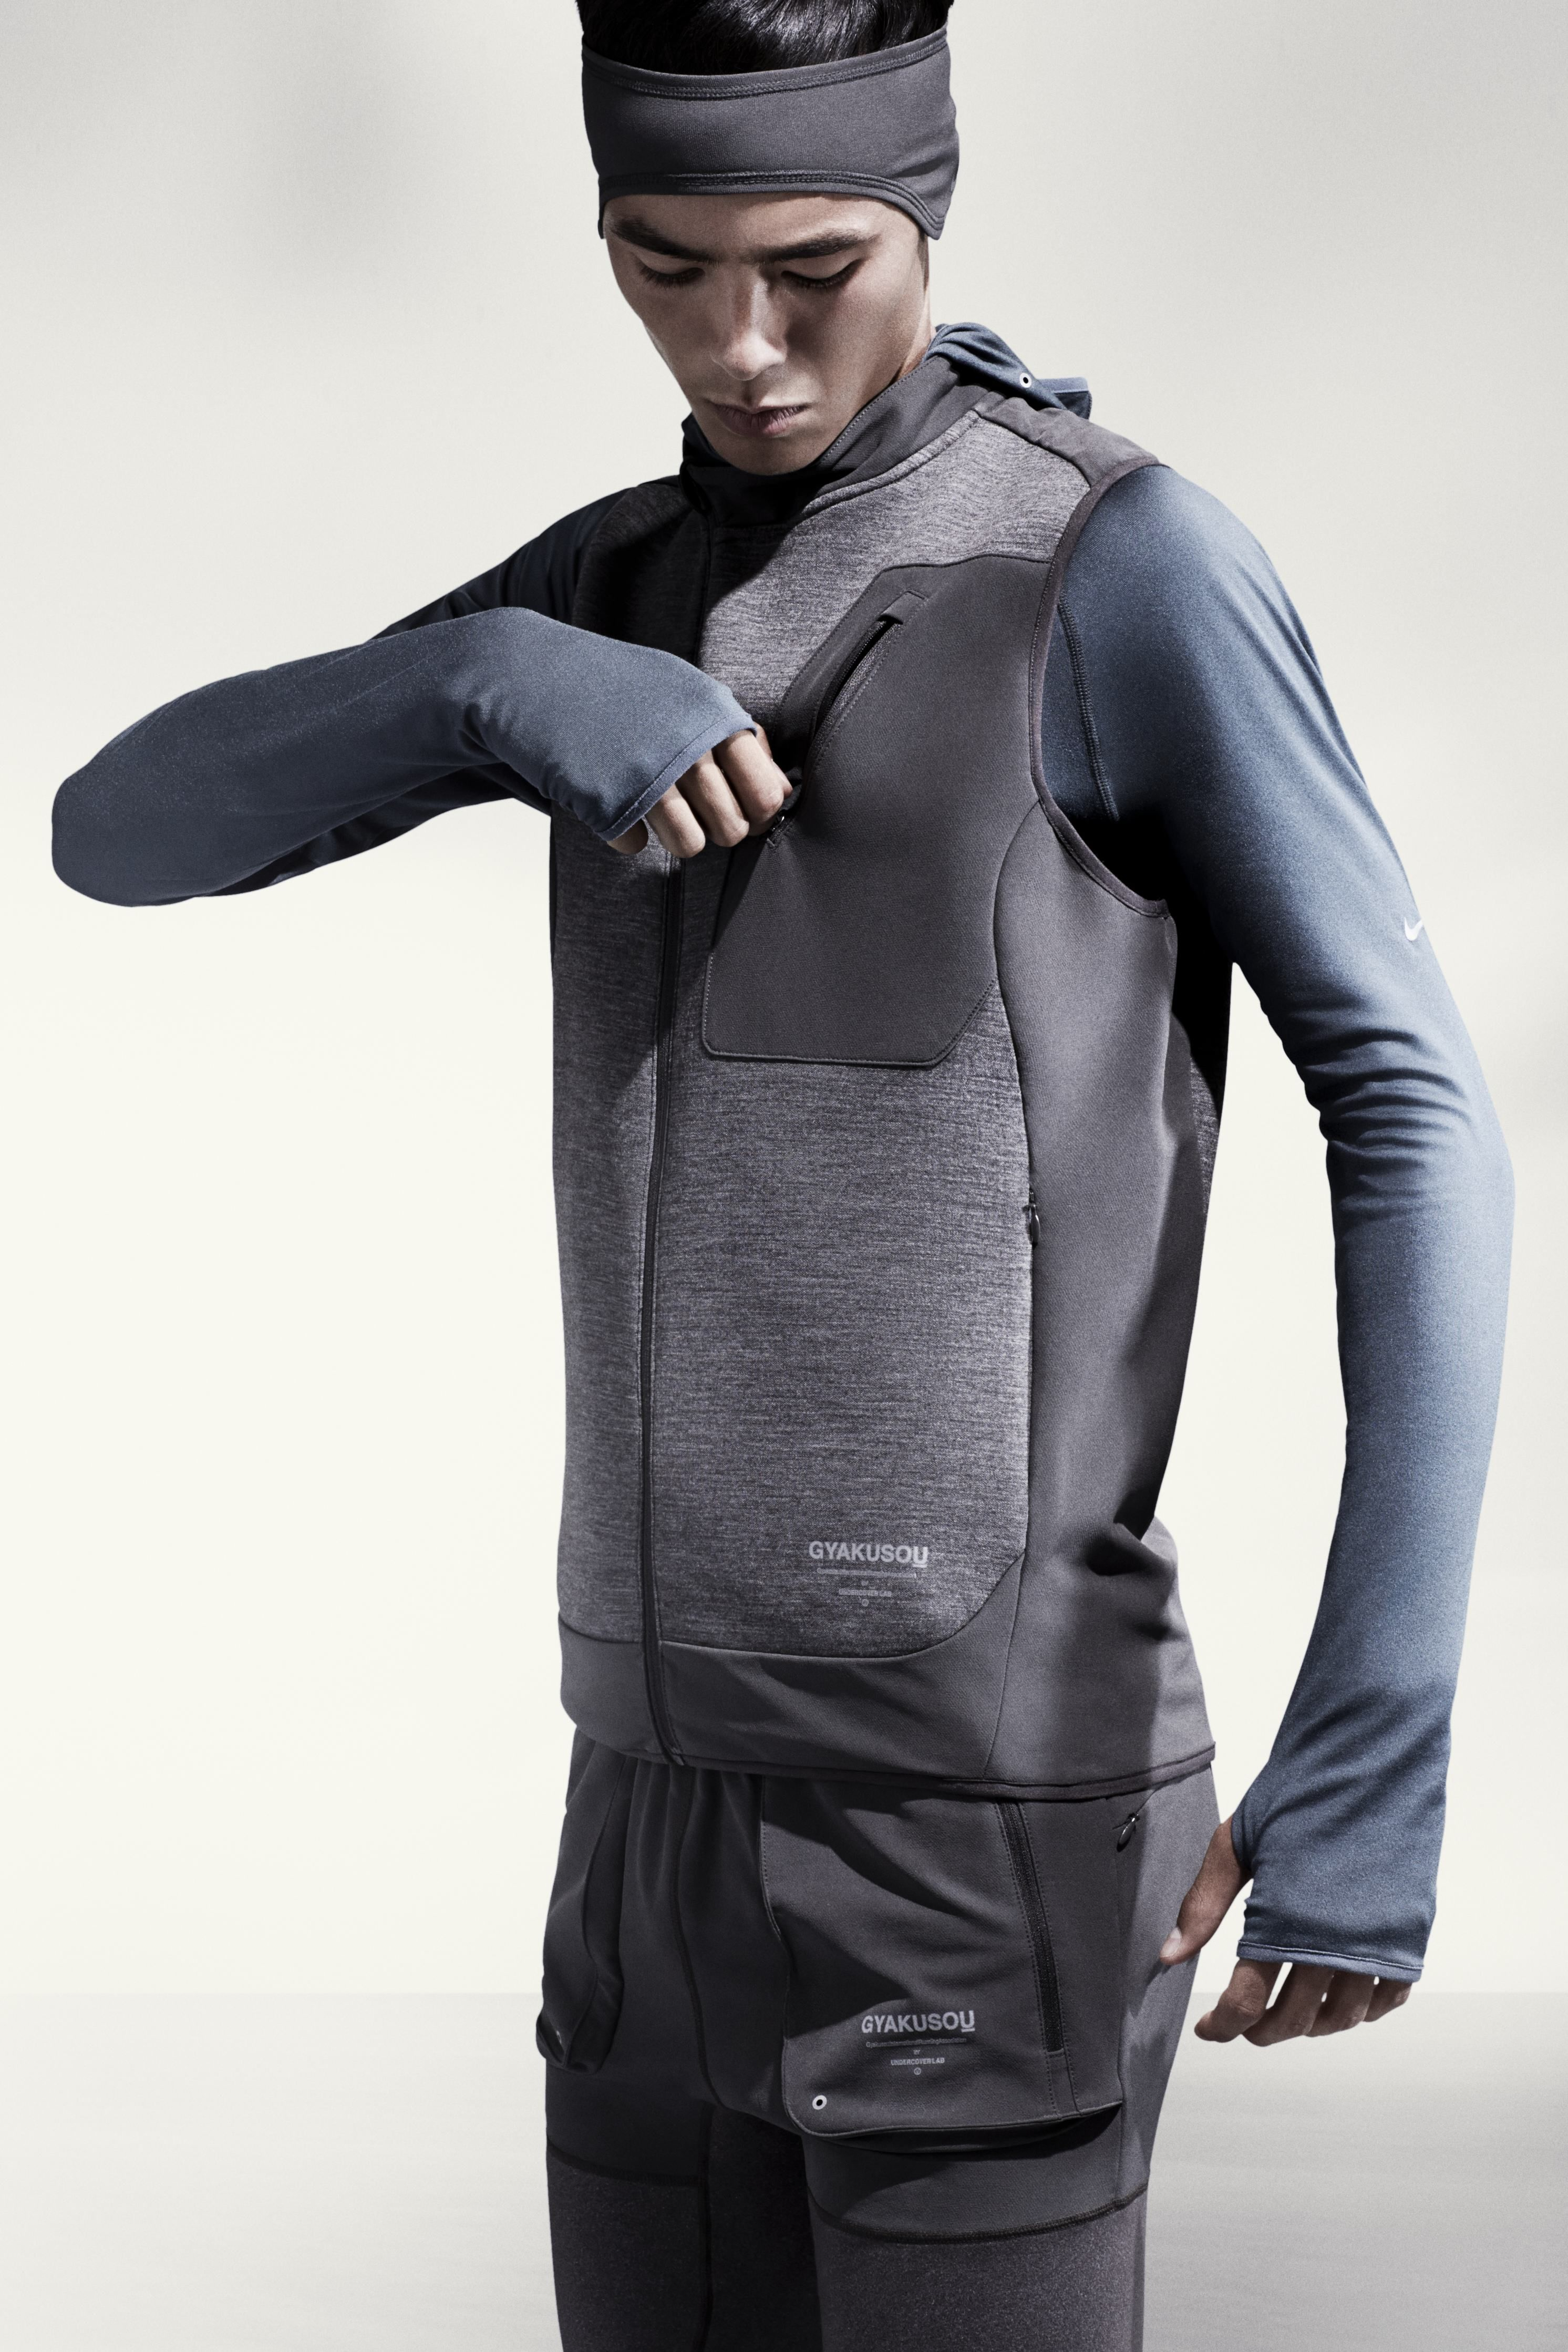 NikeLab's latest Nike x Undercover Gyakusou collection is set to turn  running apparel on it's head